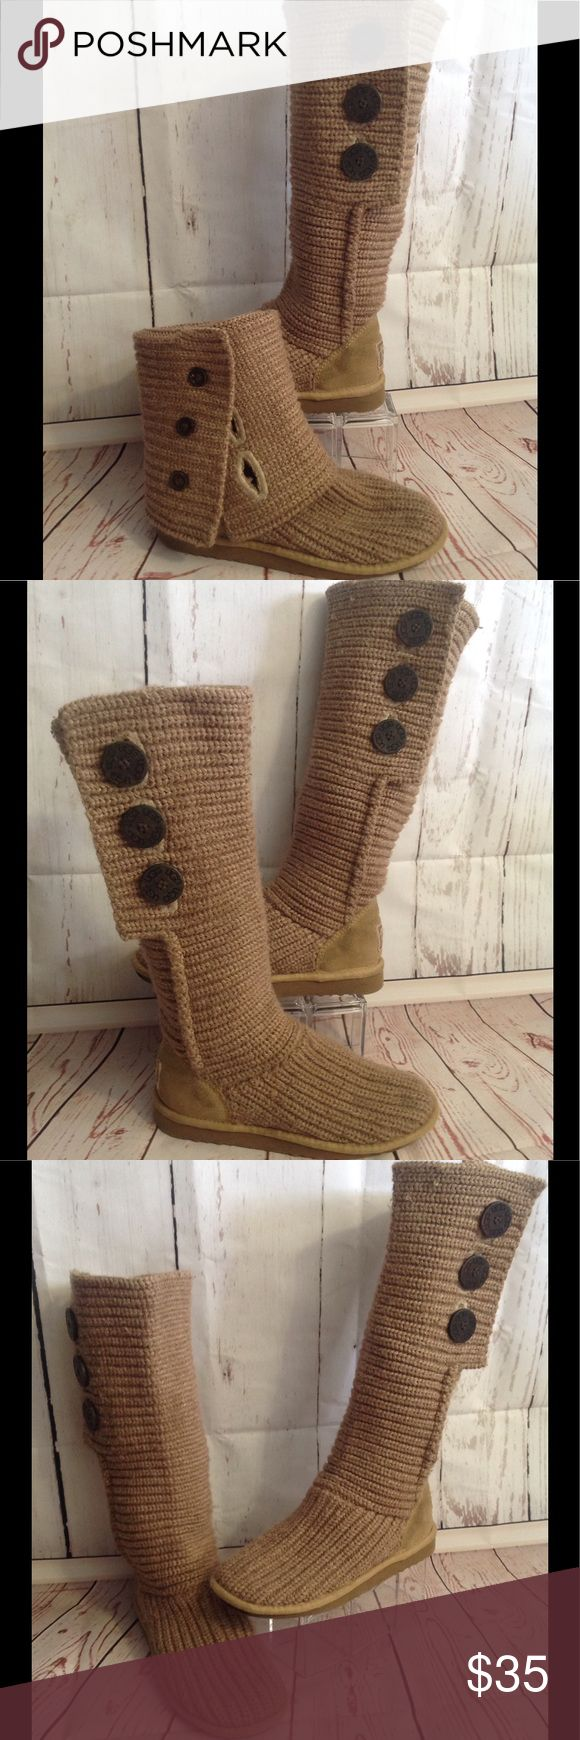 Ugg Classic Cardy Boots Ugg classic cardy boots. Tan/light brown sweater boot with brown accent buttons. Folds down to ankle boot. The perfect 2 in 1 boot! UGG Shoes Ankle Boots & Booties